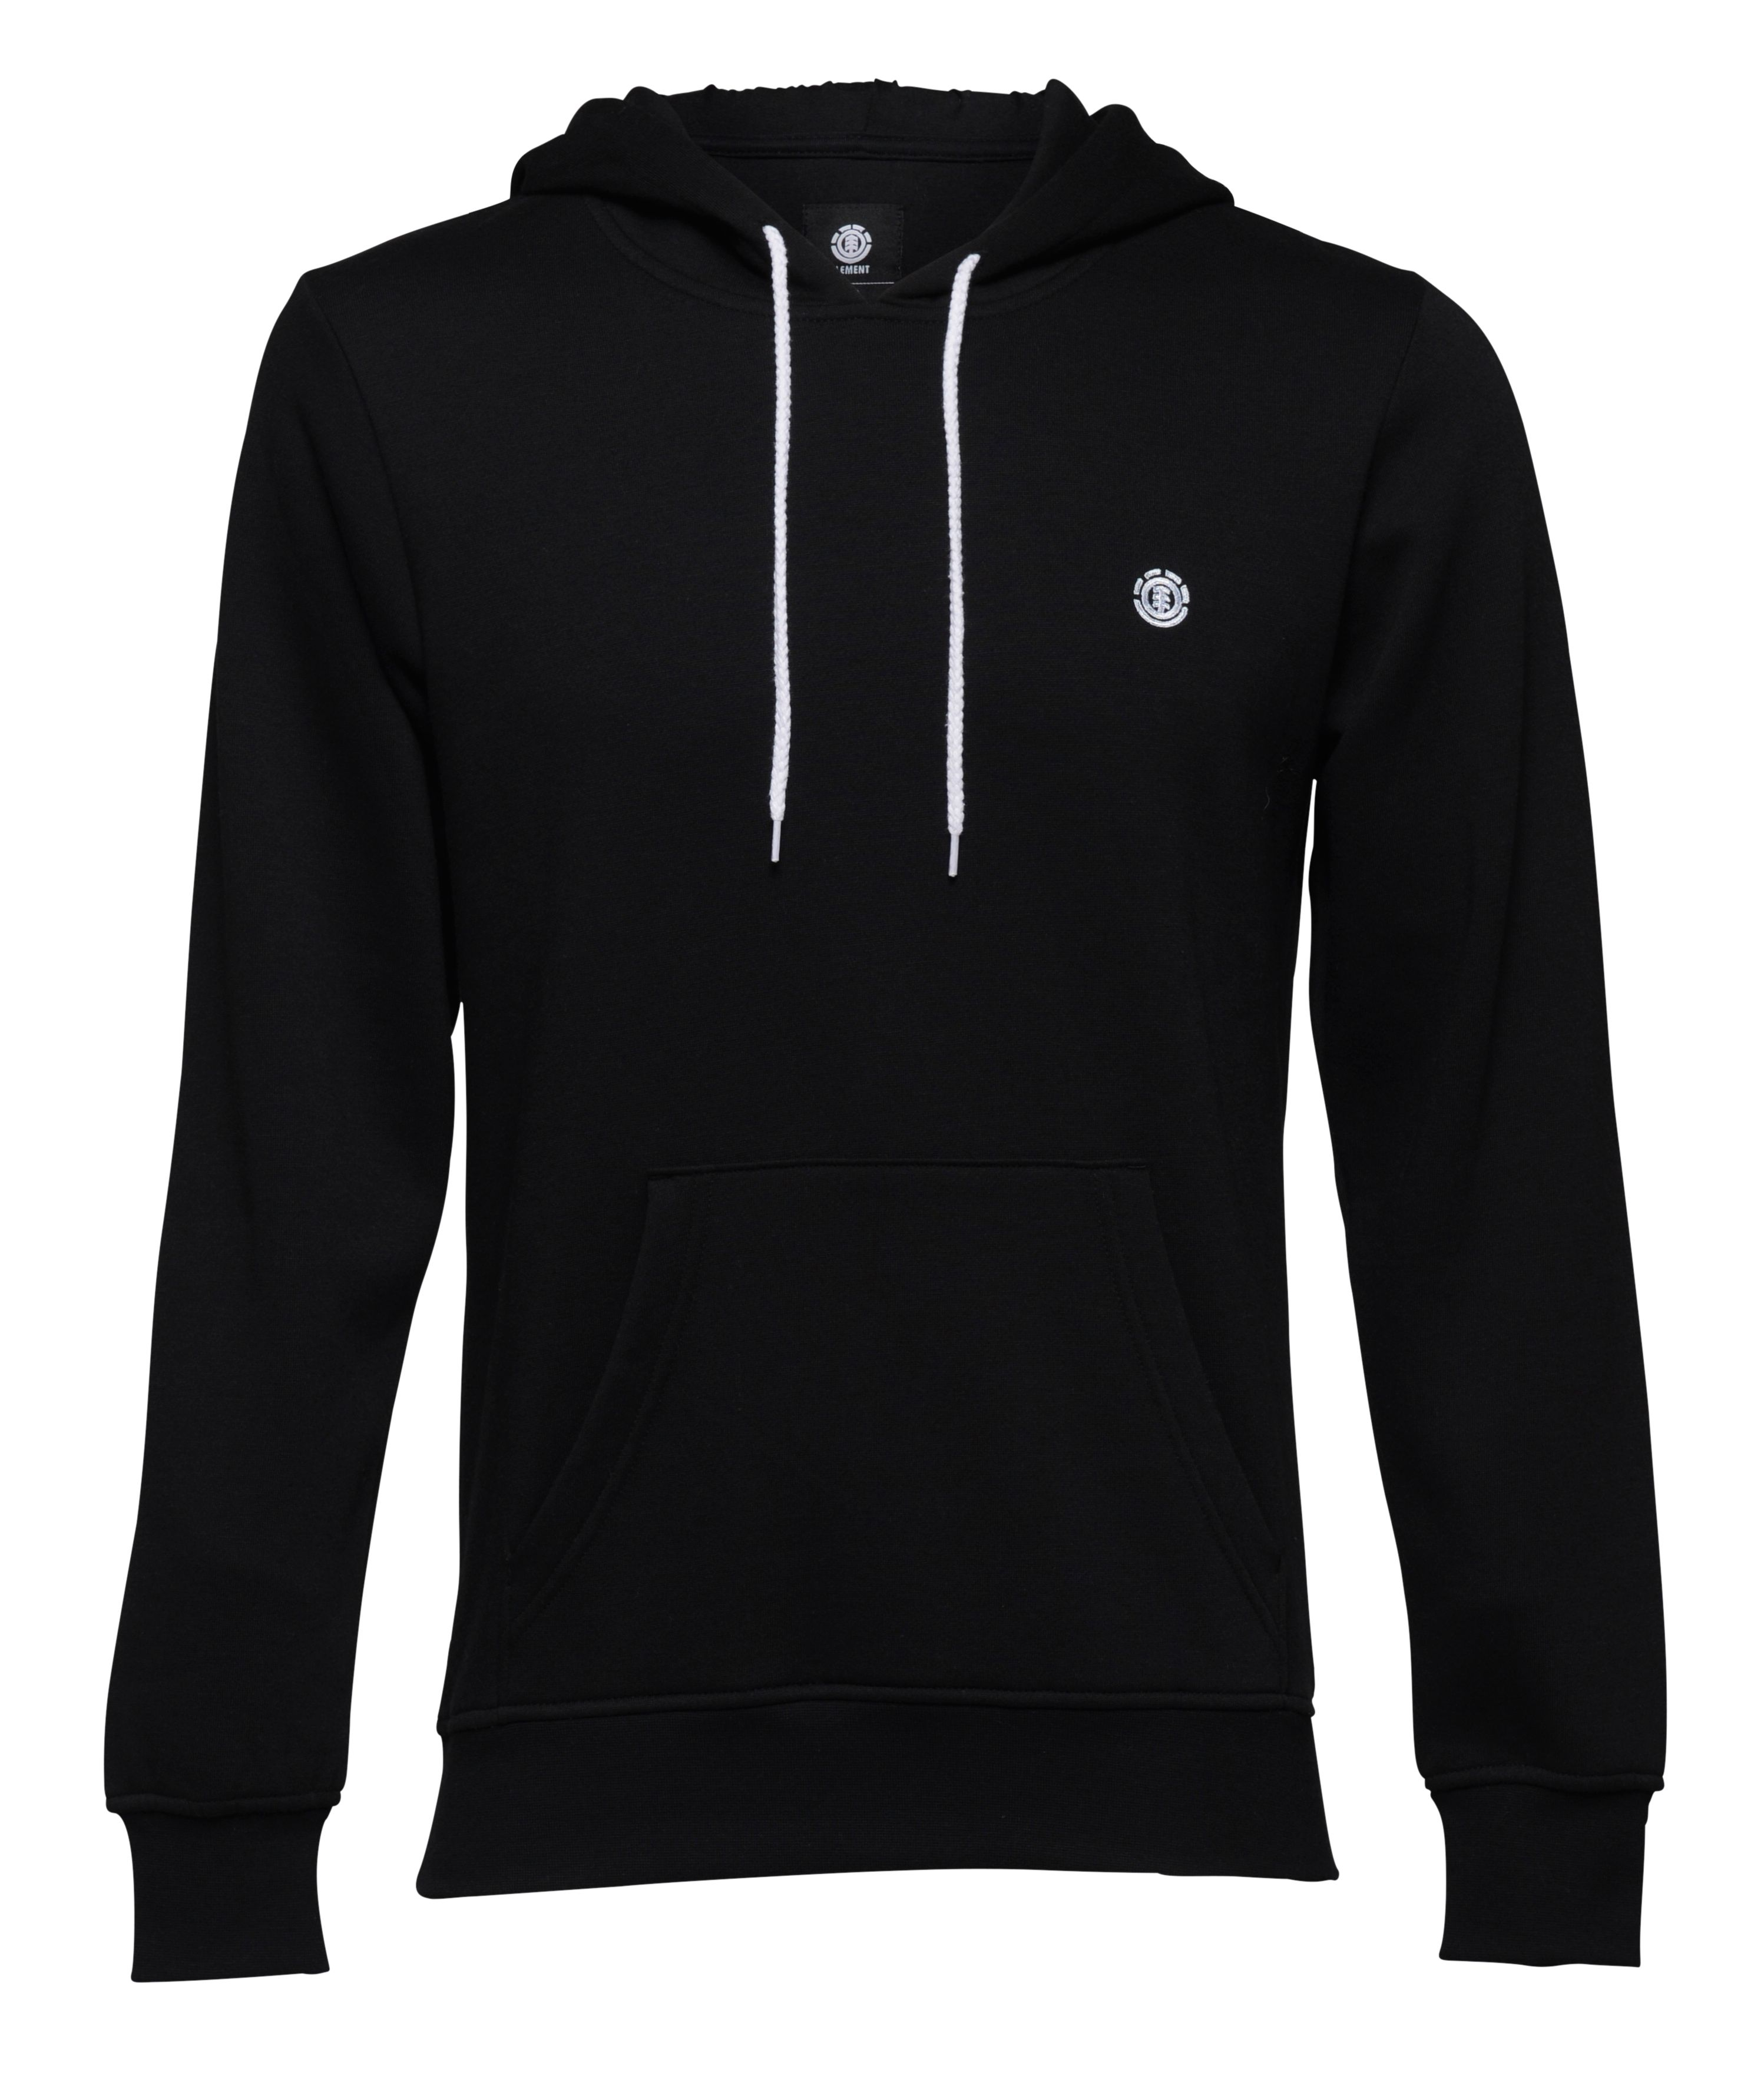 Men's Element Hooded Sweater, Black